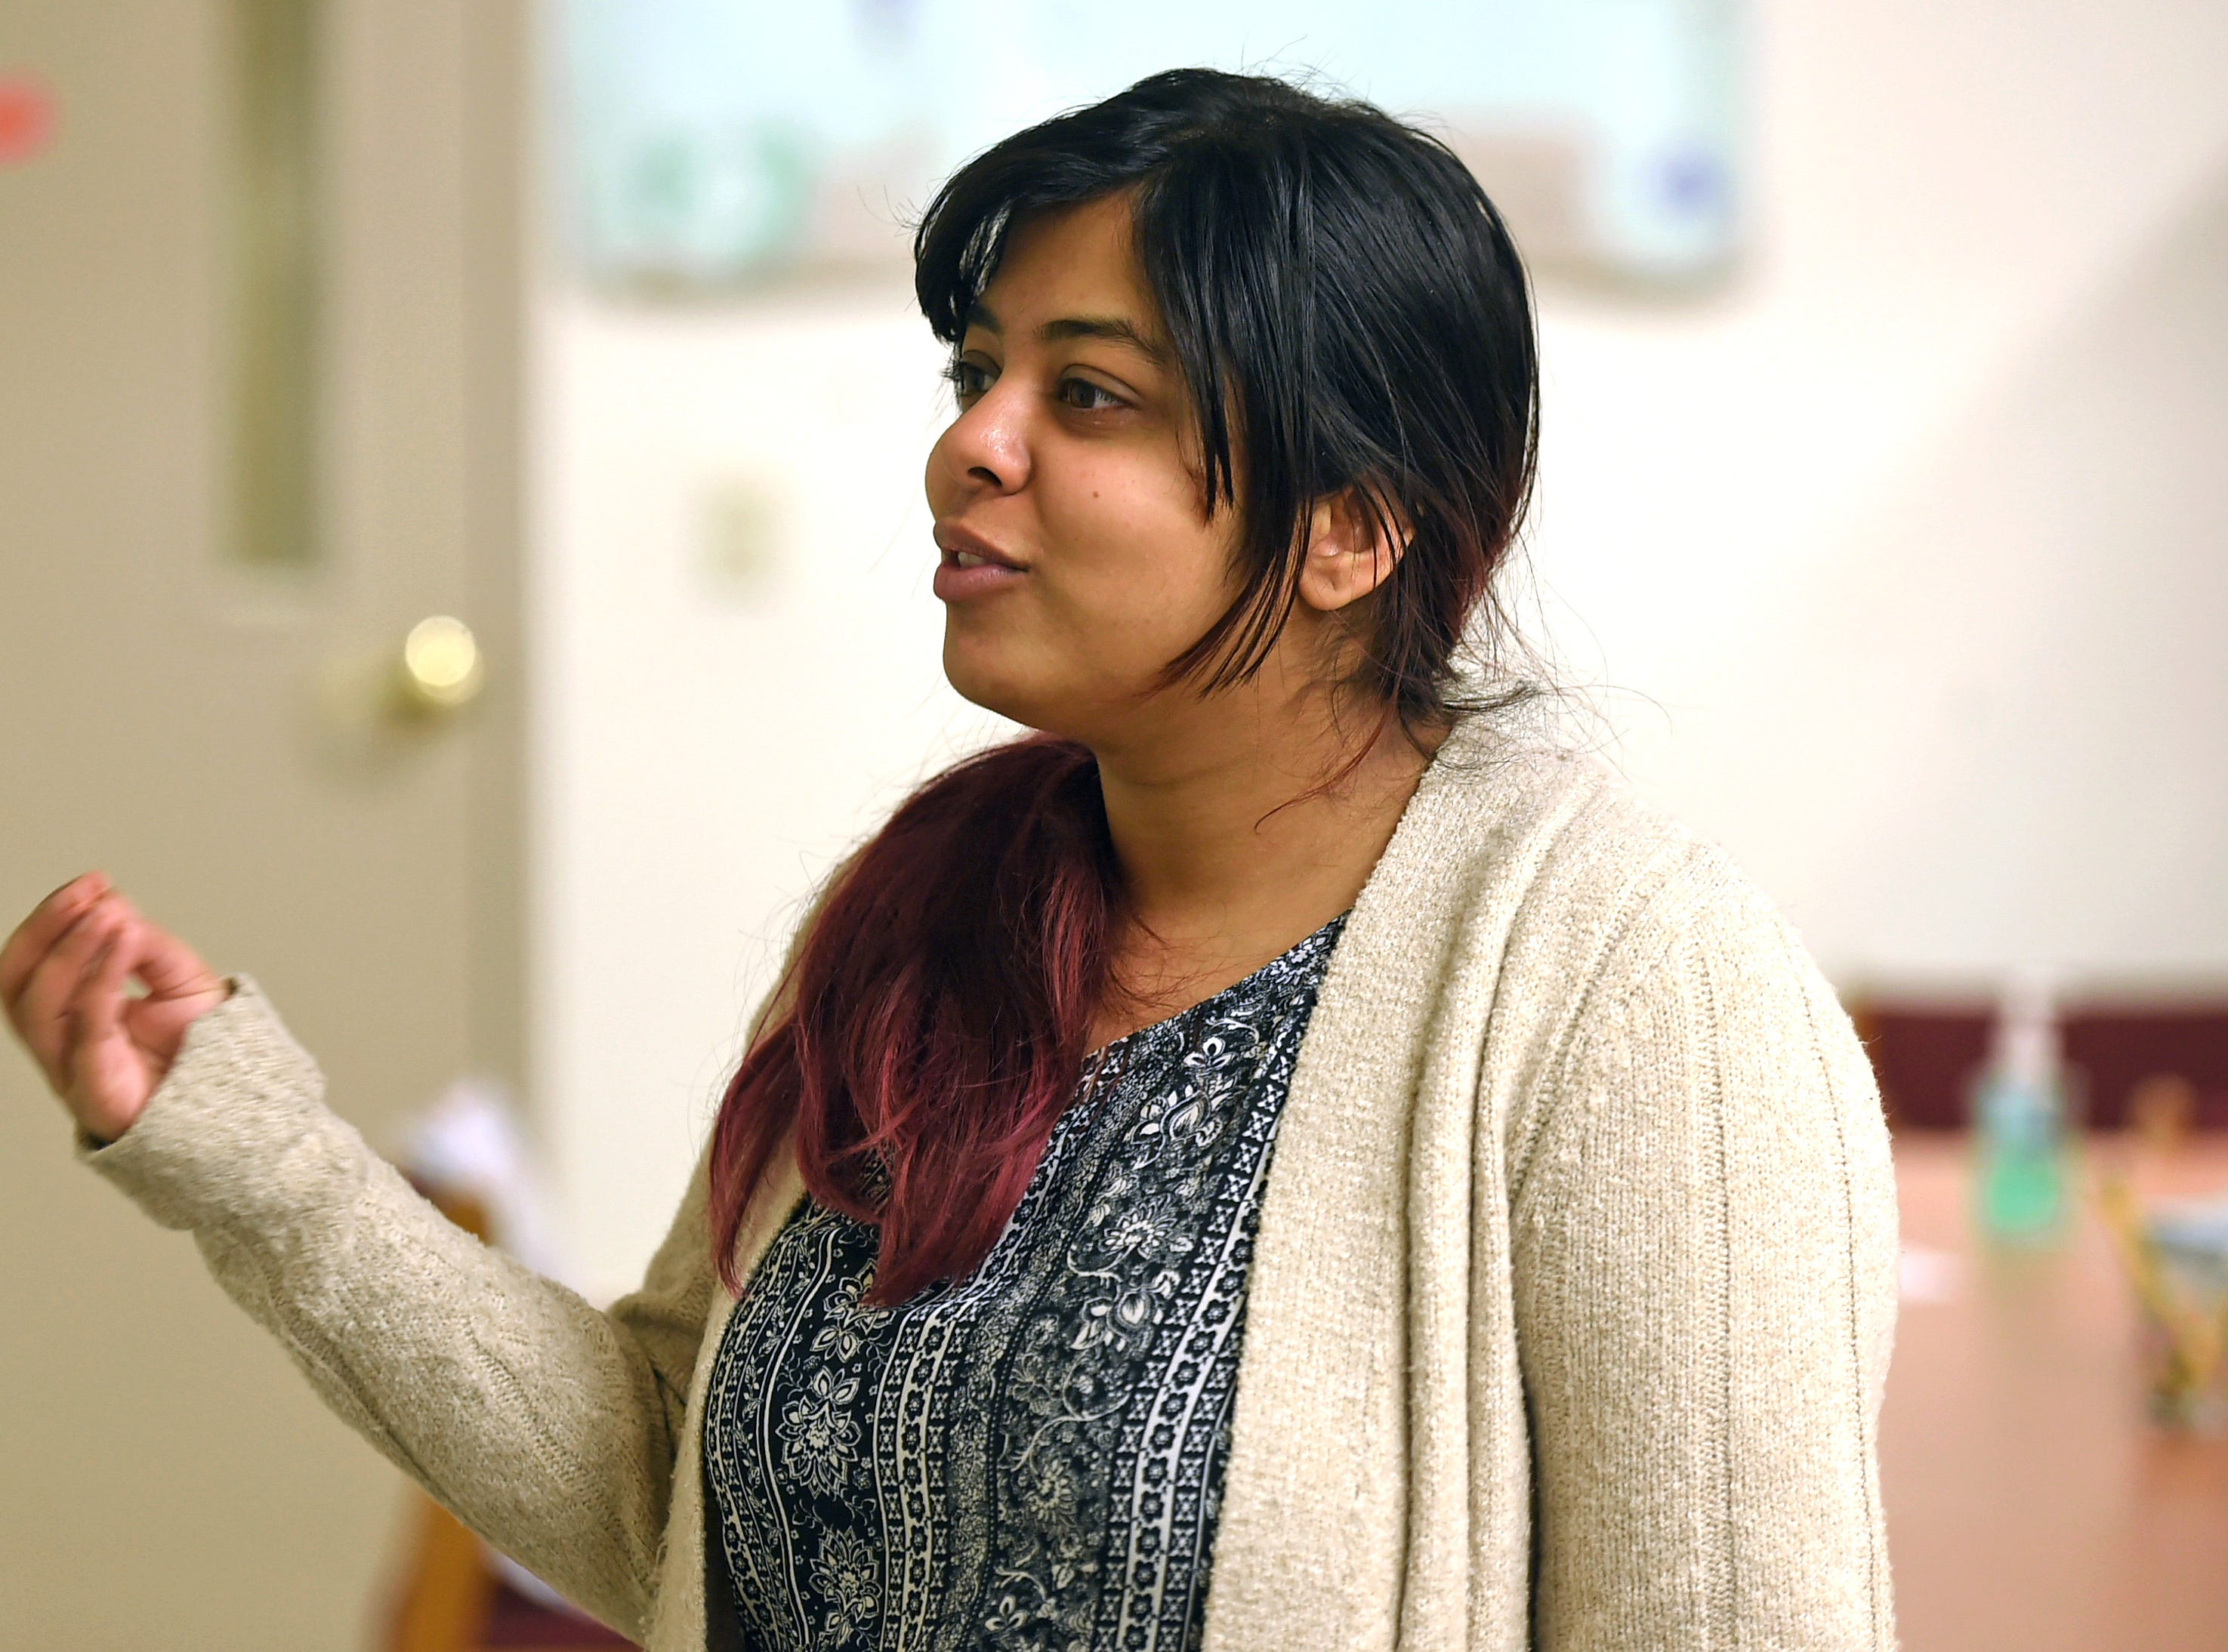 Renelle Pereira, a Binghamton University graduate, volunteers at The American Civic Association in Binghamton. Pereira, who recently became an American citizen, is a co-leader of the ACA's newly formed Girl Scout troop.